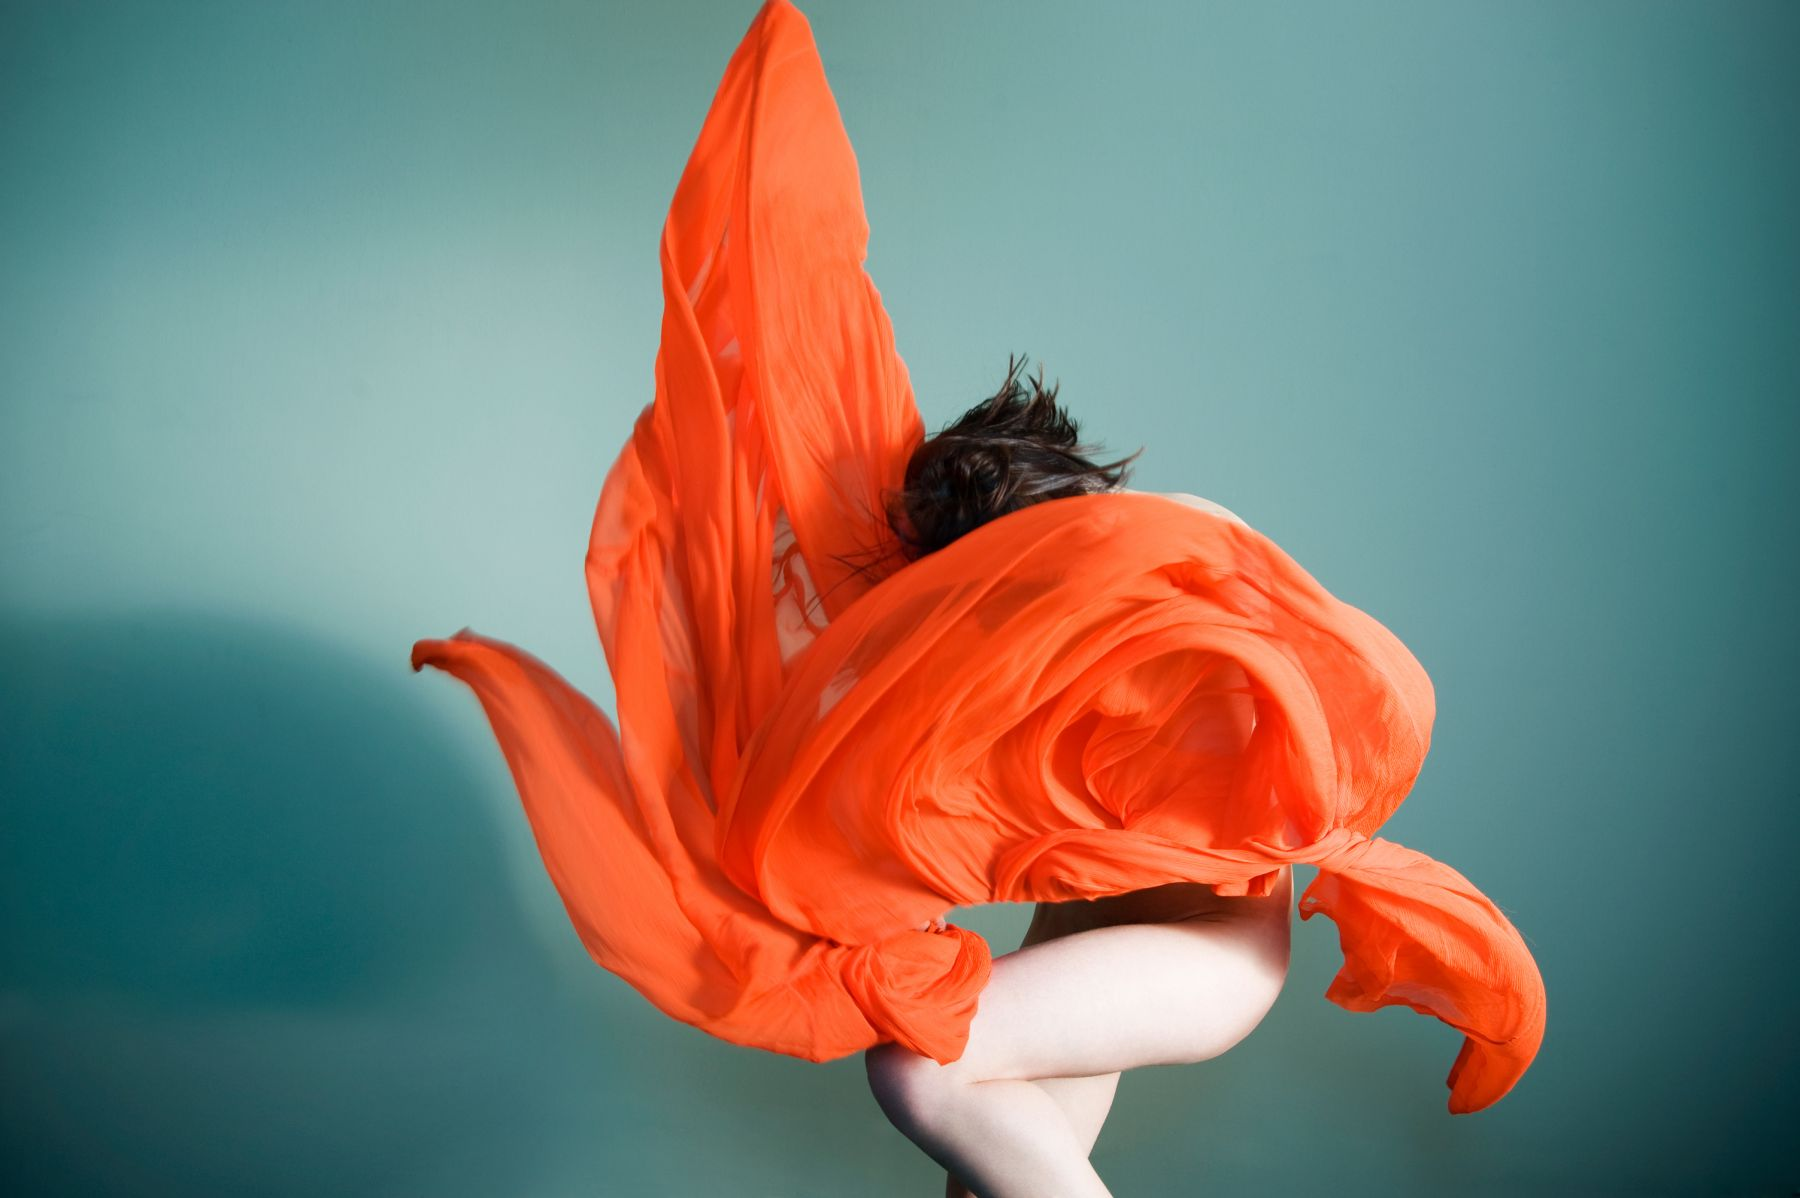 Sophie Delaporte, Nudes, Model with swirl of orange fabric, 2010, Sous Les Etoiles Gallery